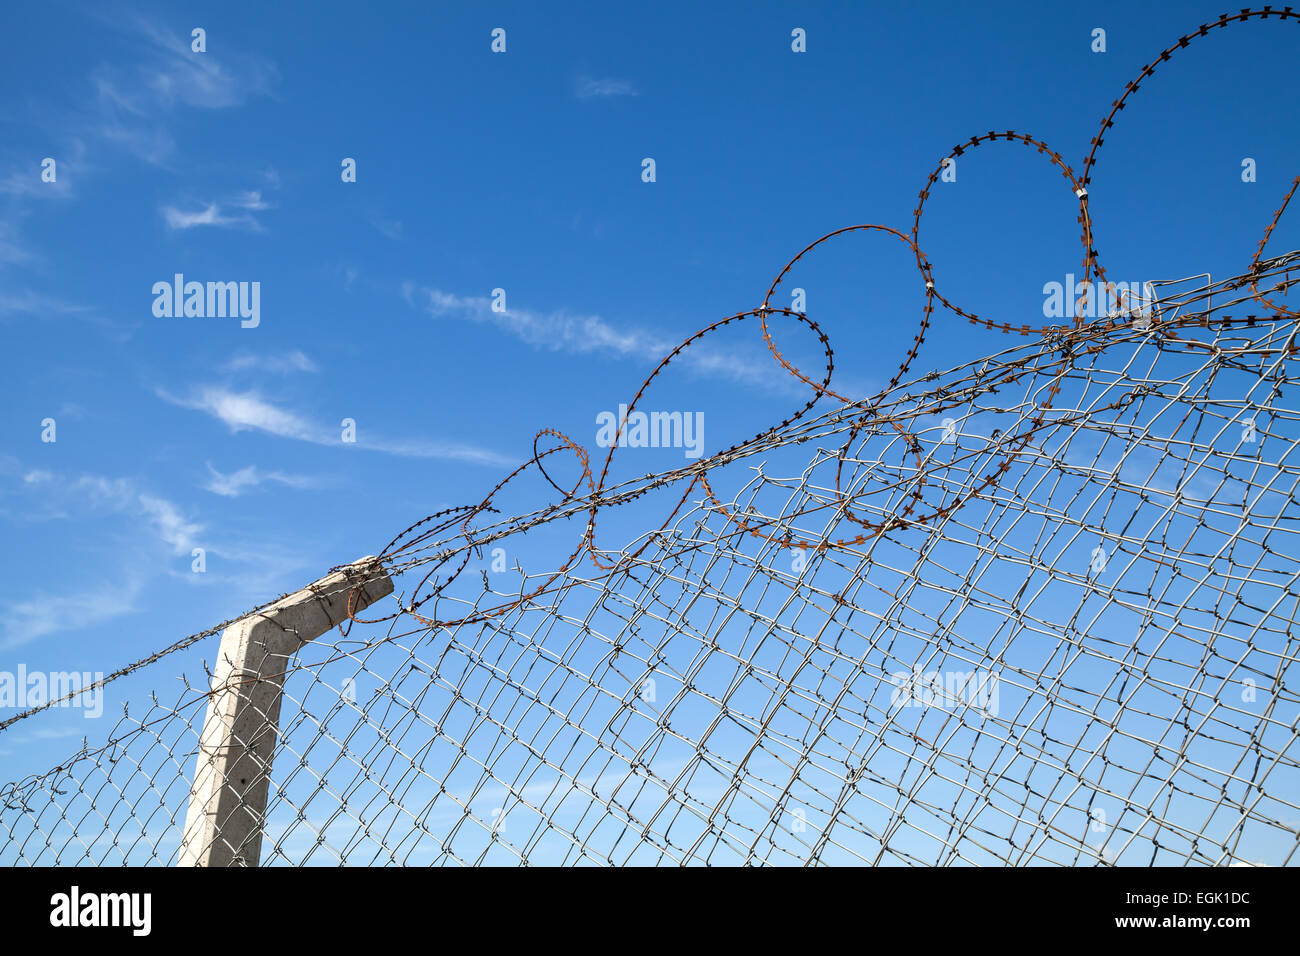 Metal fence with barbed wire over blue sky background - Stock Image